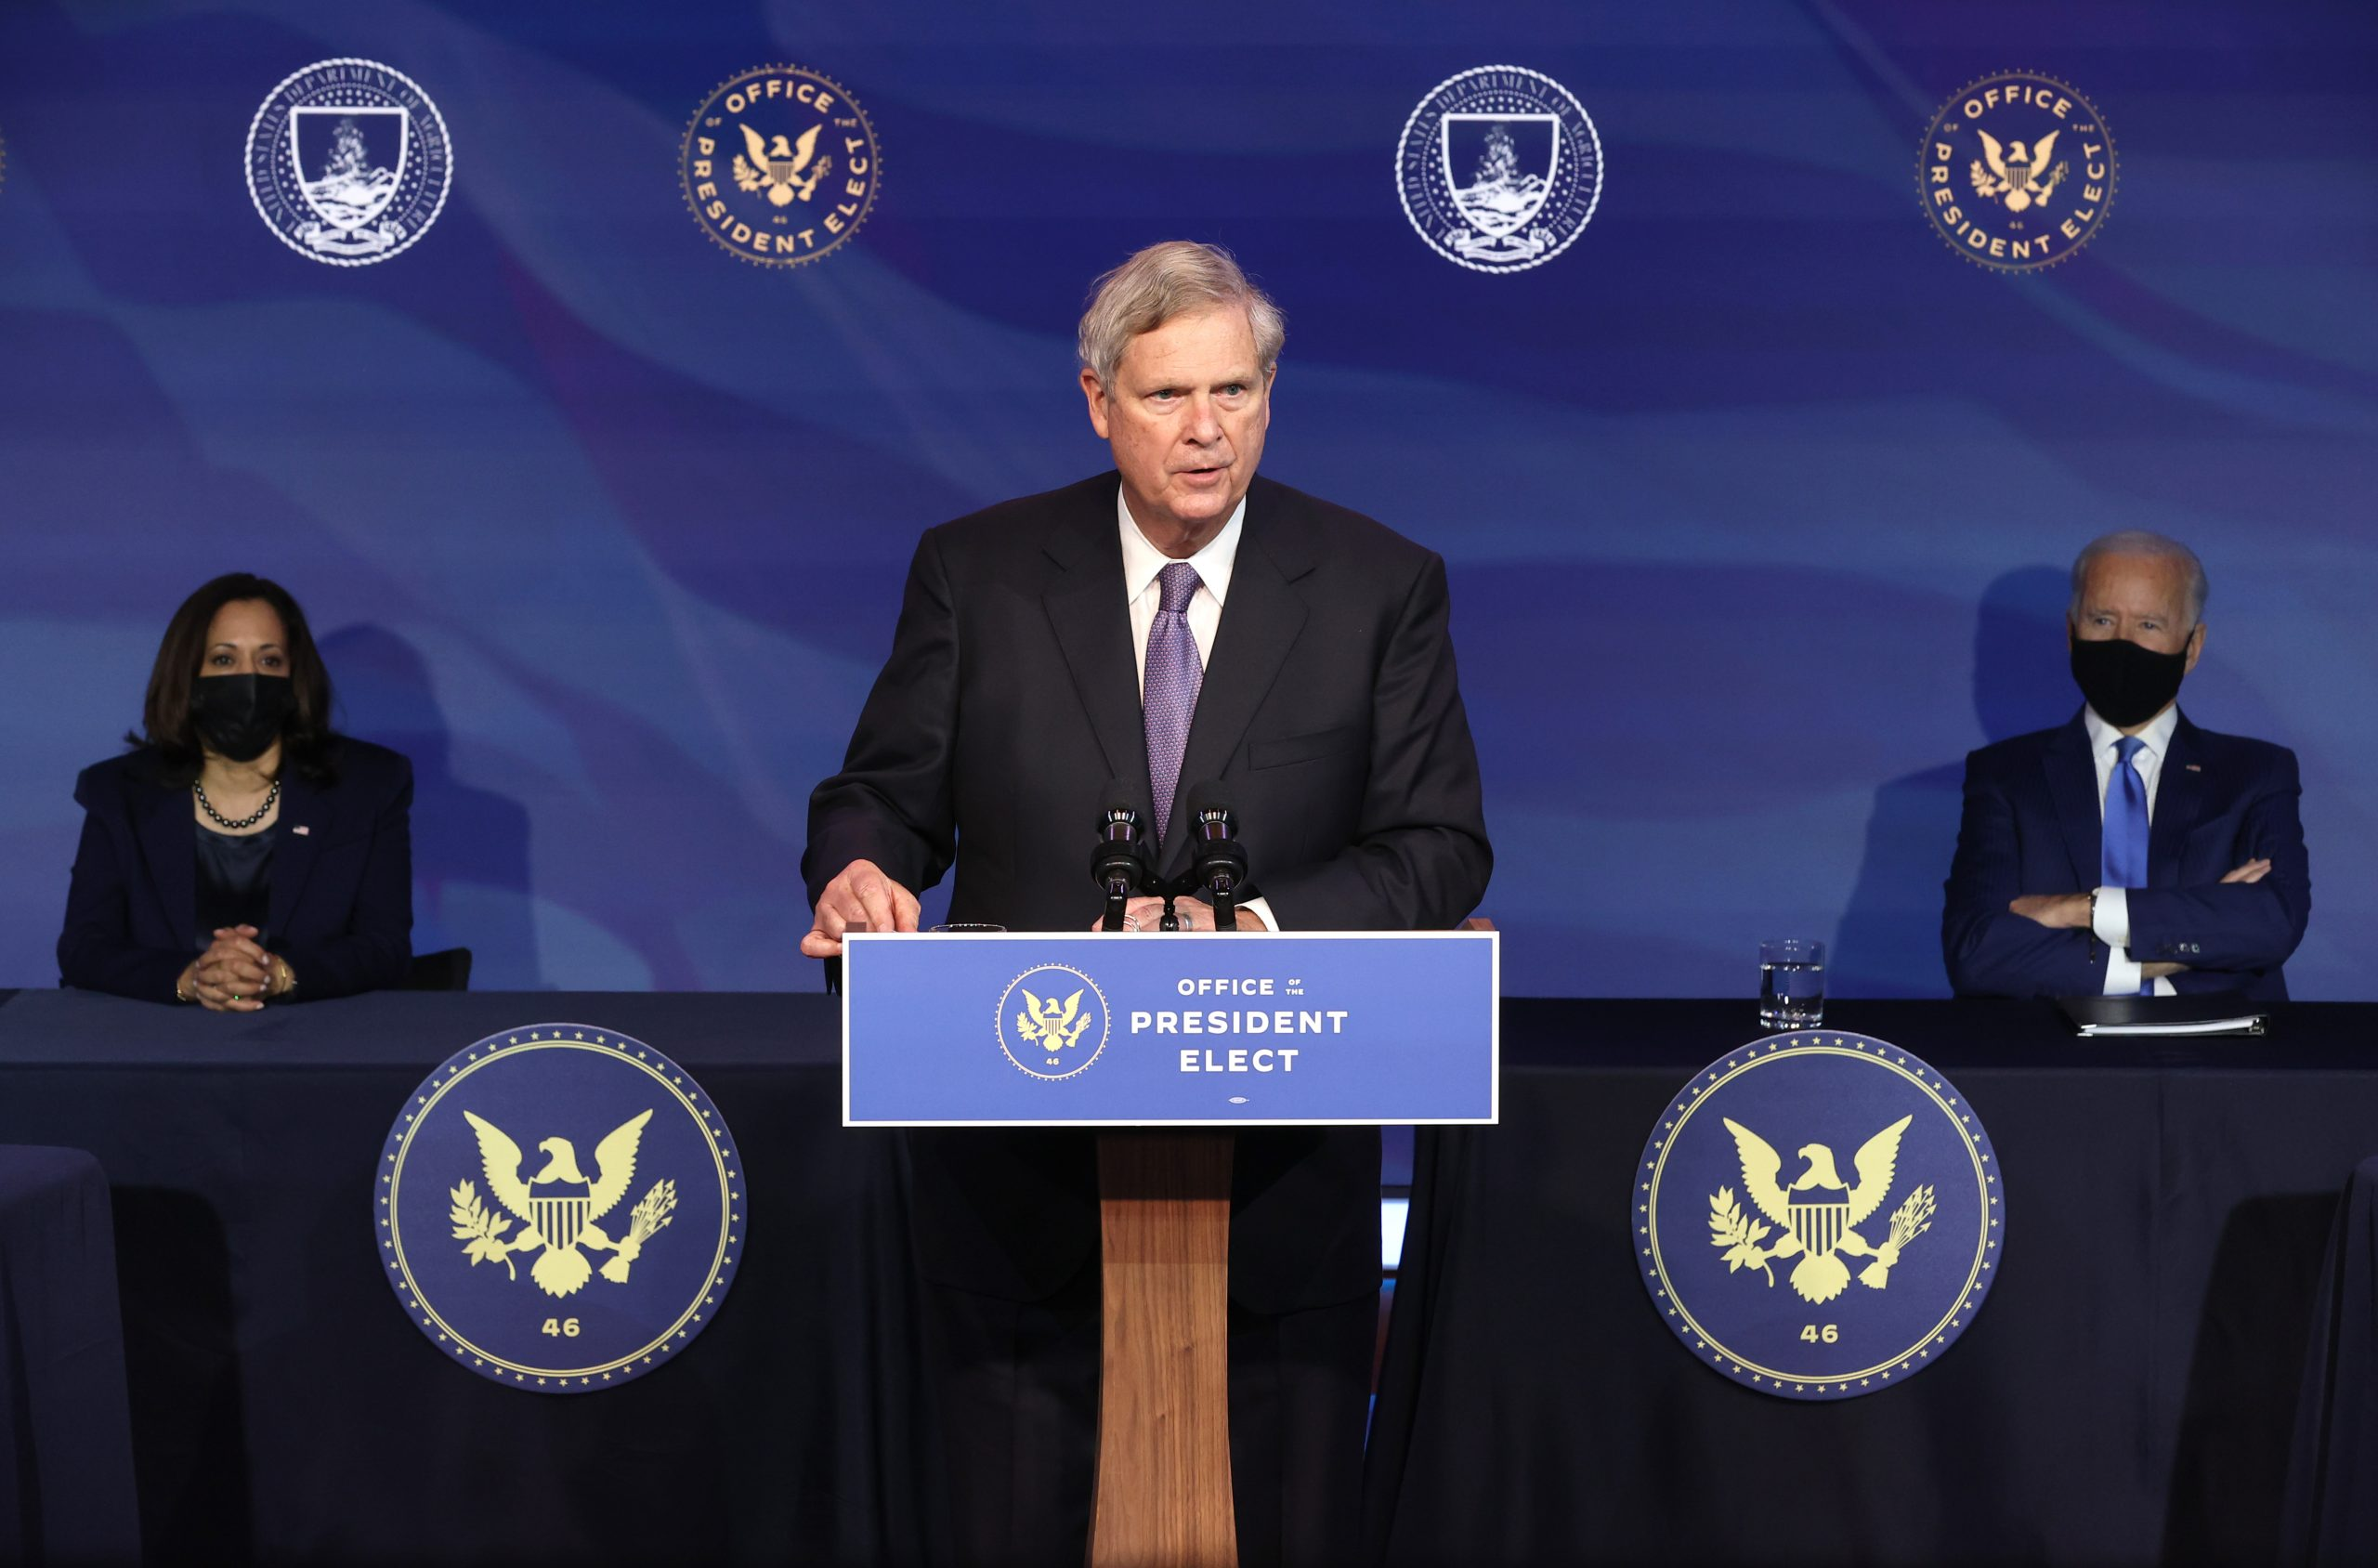 Ag nominee Vilsack battles skepticism from Black farmers ahead of confirmation hearing